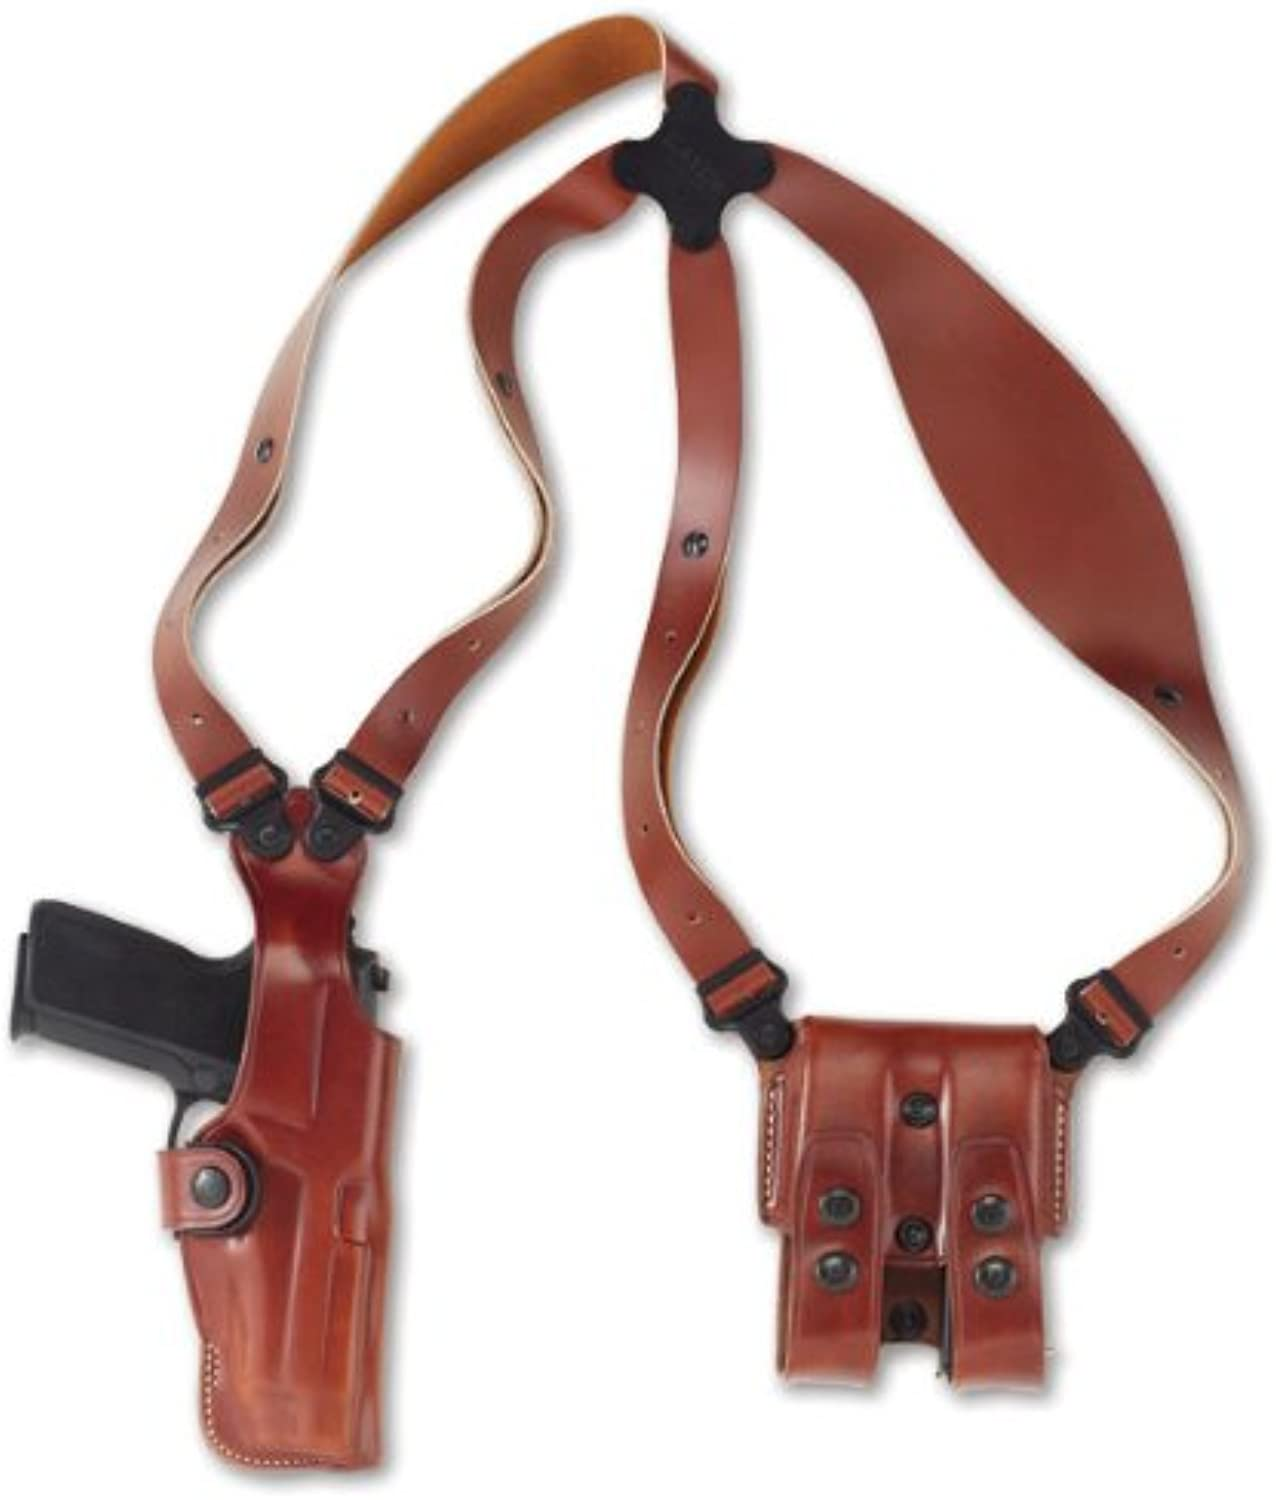 Galco International greenical Shoulder Holster System for S and W L FR 686, 4Inch